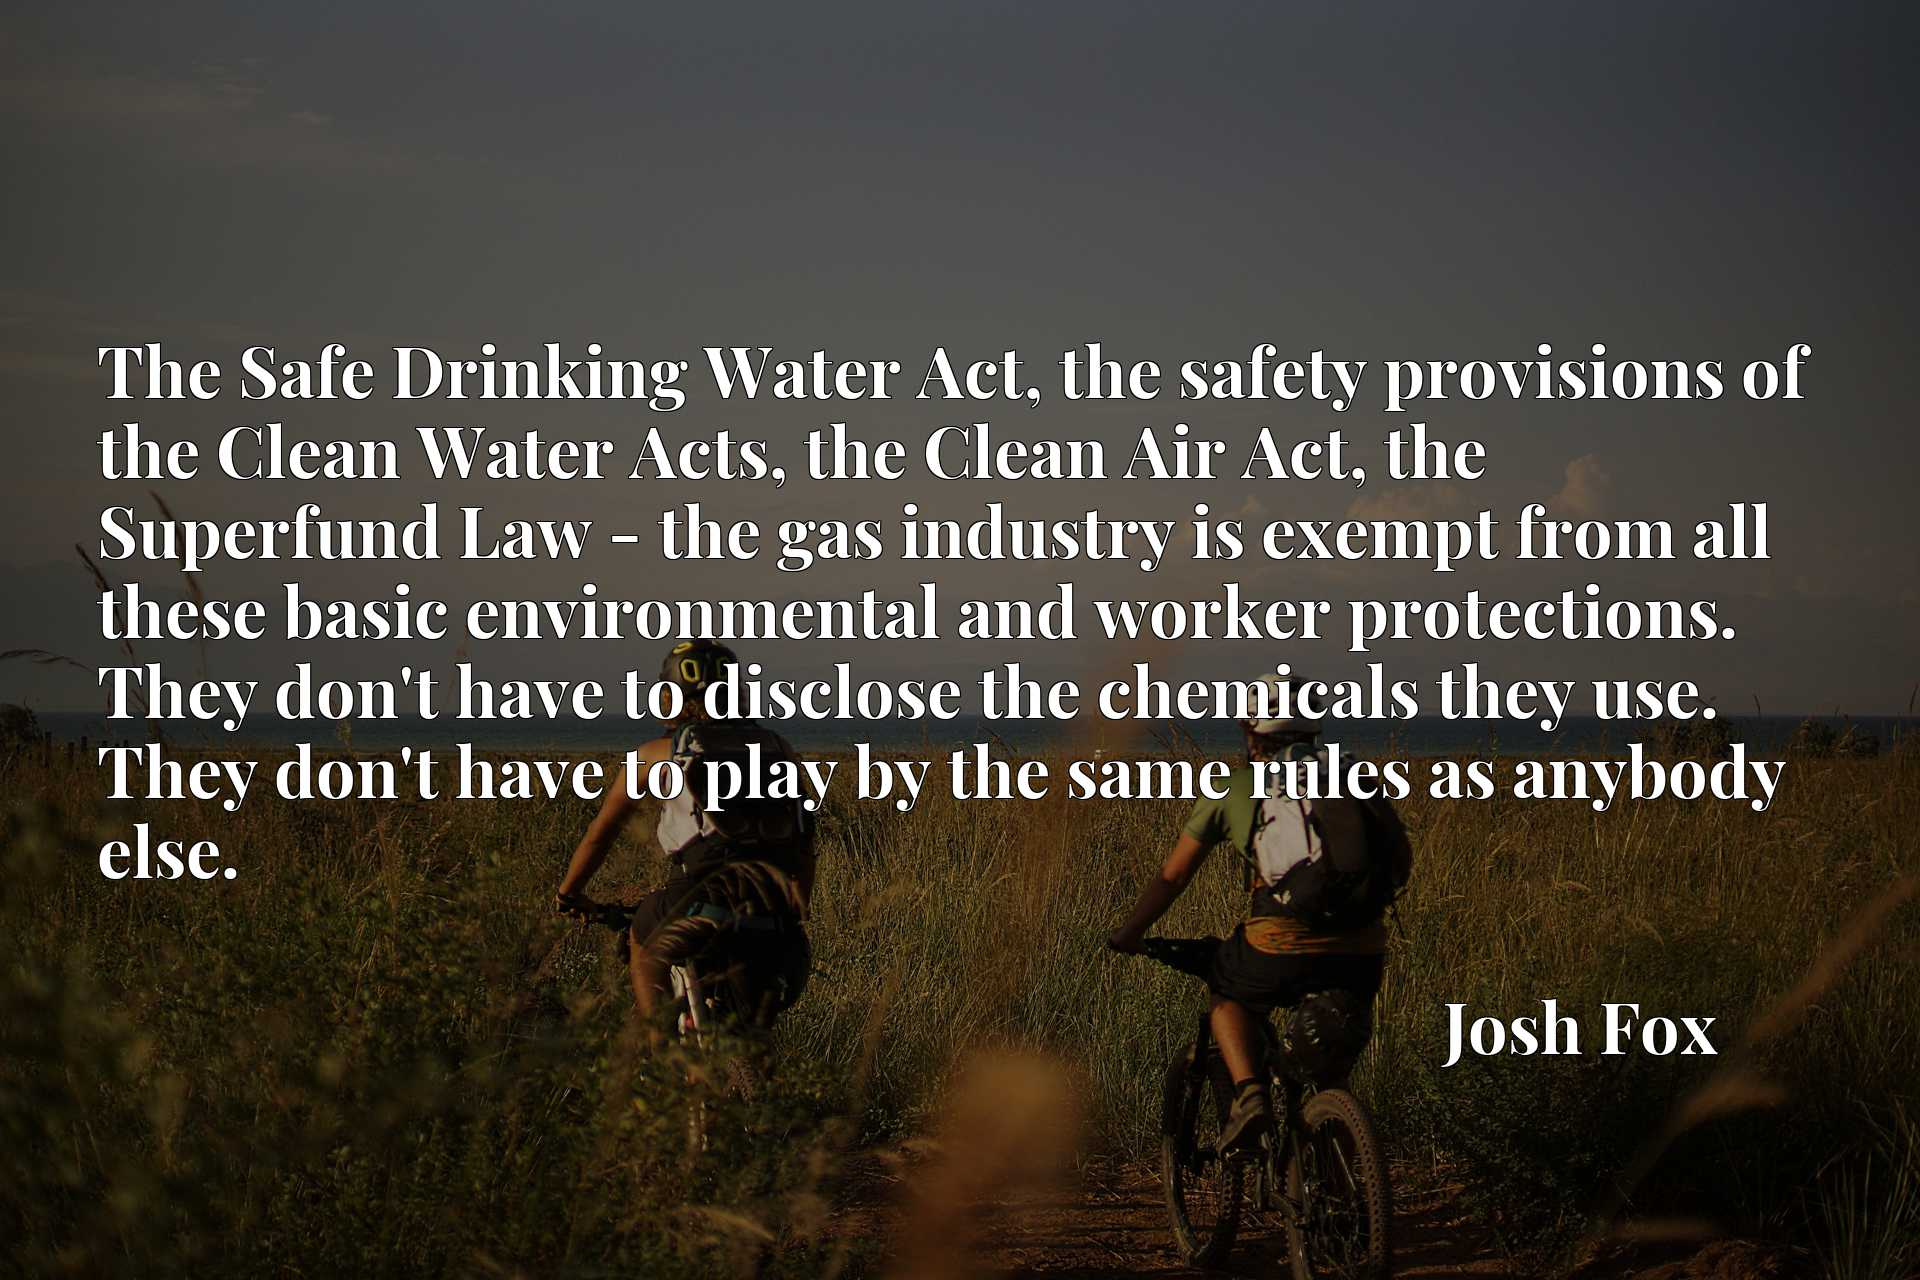 The Safe Drinking Water Act, the safety provisions of the Clean Water Acts, the Clean Air Act, the Superfund Law - the gas industry is exempt from all these basic environmental and worker protections. They don't have to disclose the chemicals they use. They don't have to play by the same rules as anybody else.